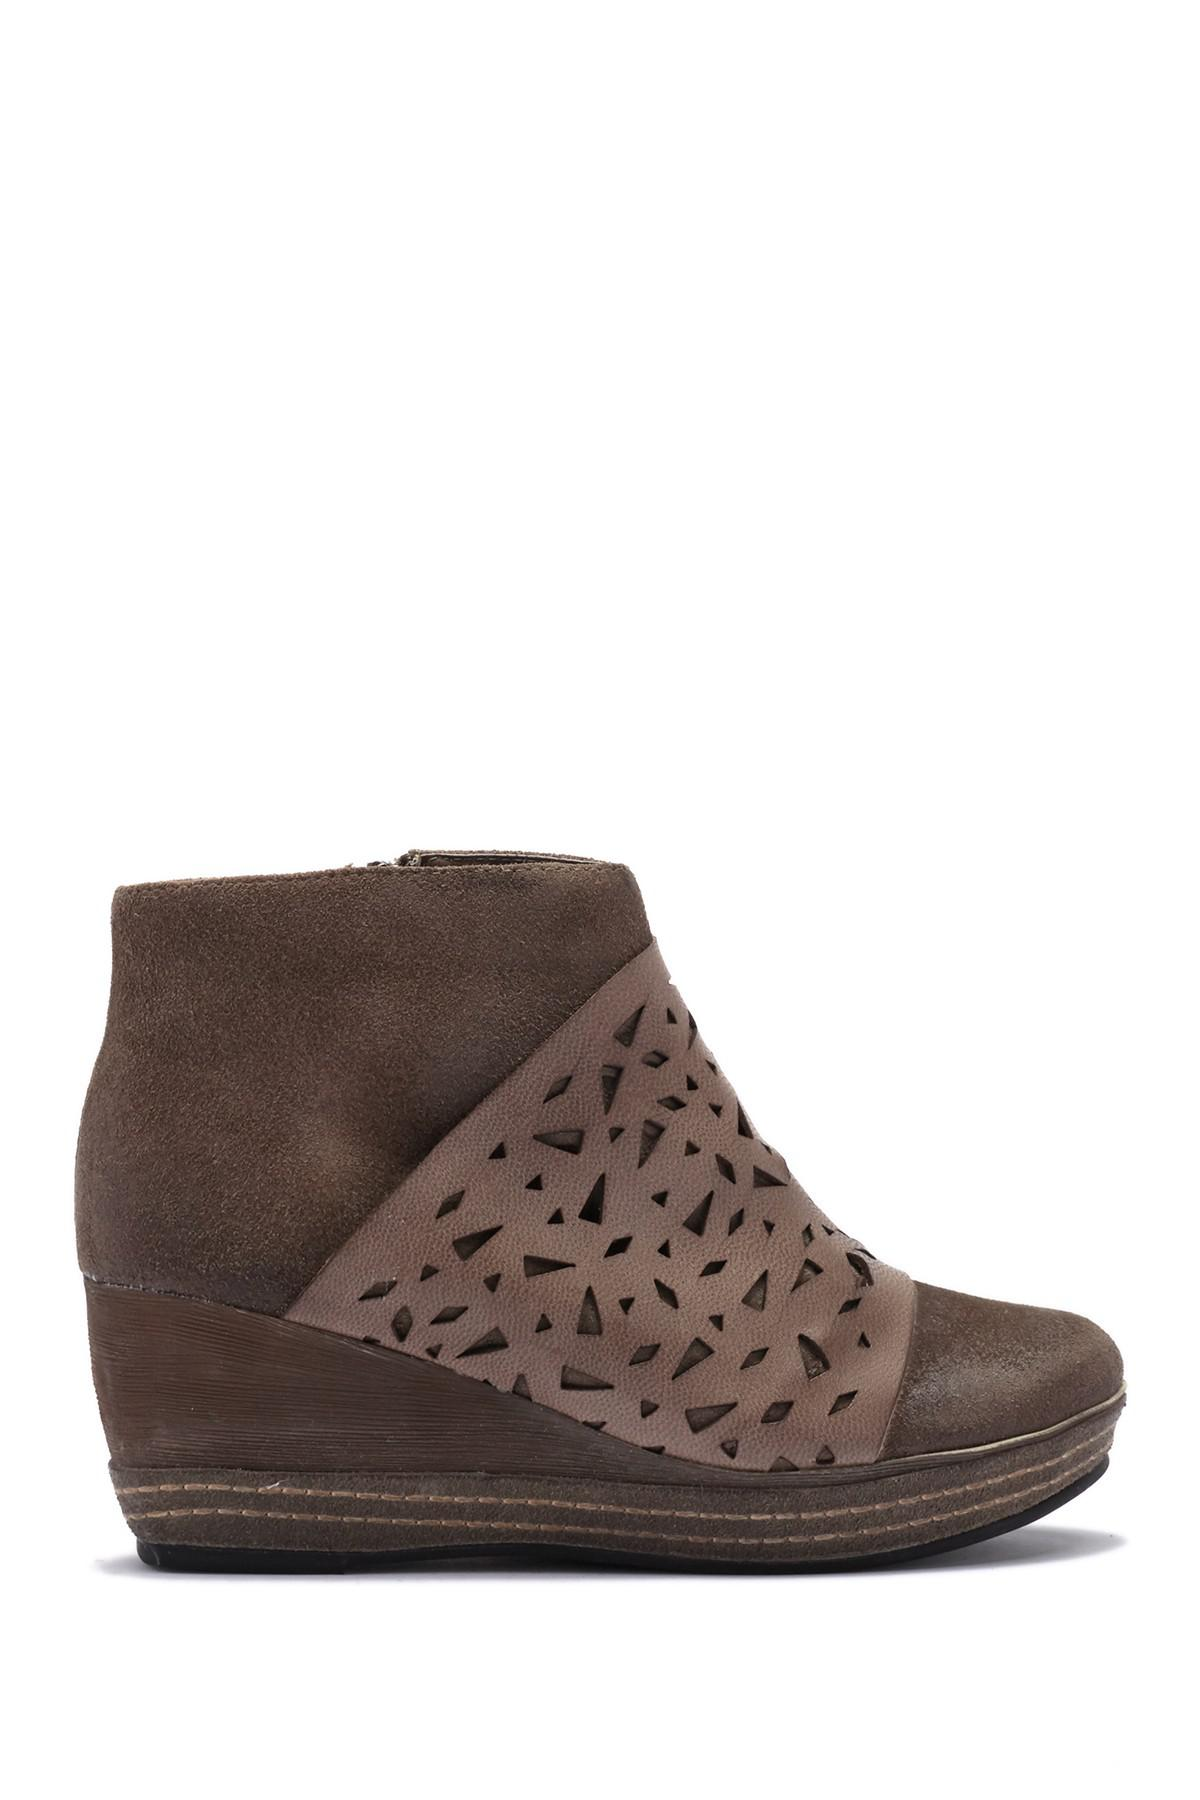 e508df9e655c Lyst - Antelope Lasercut Leather Wedge Bootie in Gray